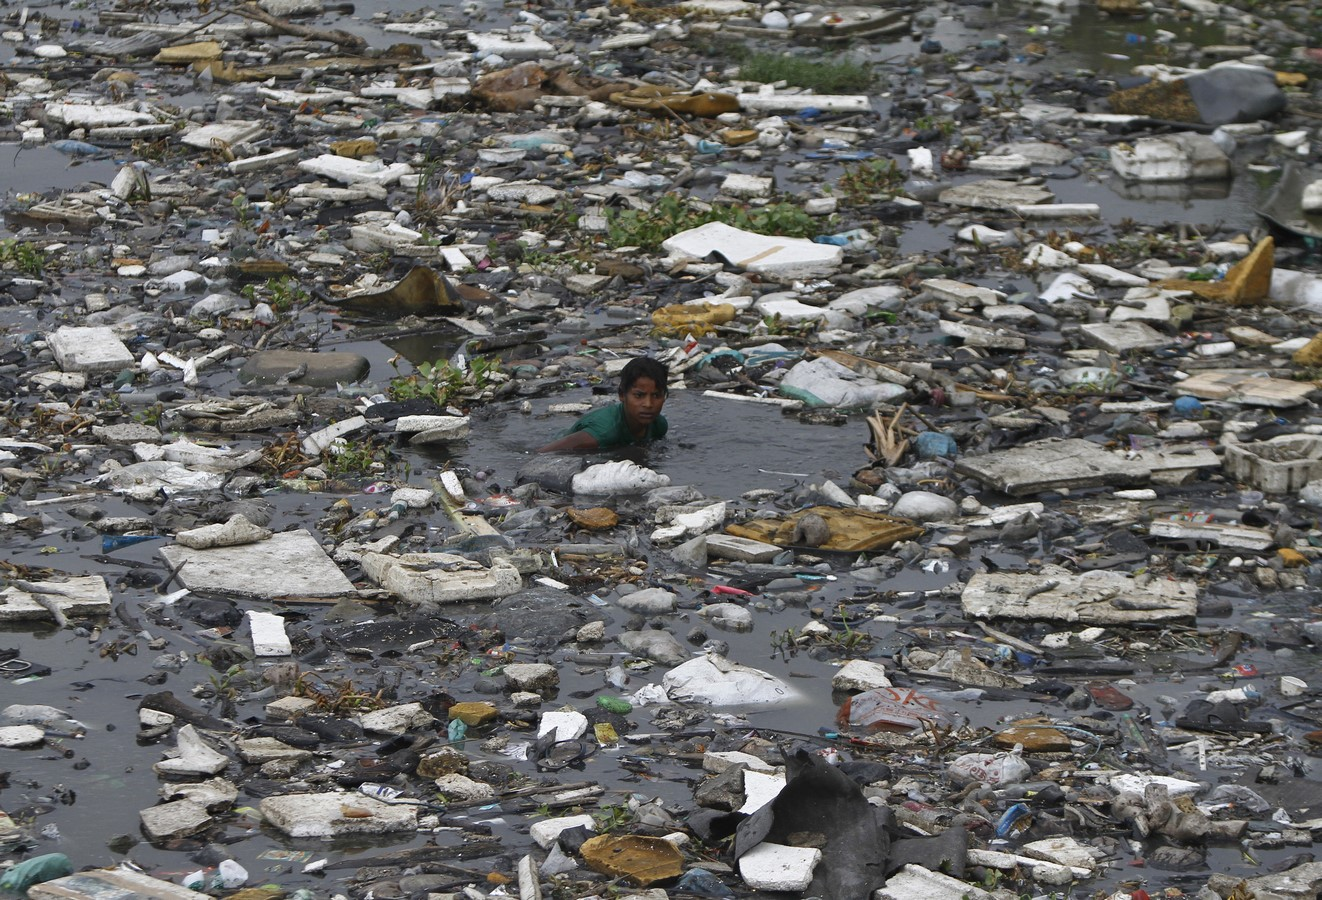 Architecture and the Environment – New Delhi's Pollution Crisis and an Architect's Role - Sheet3